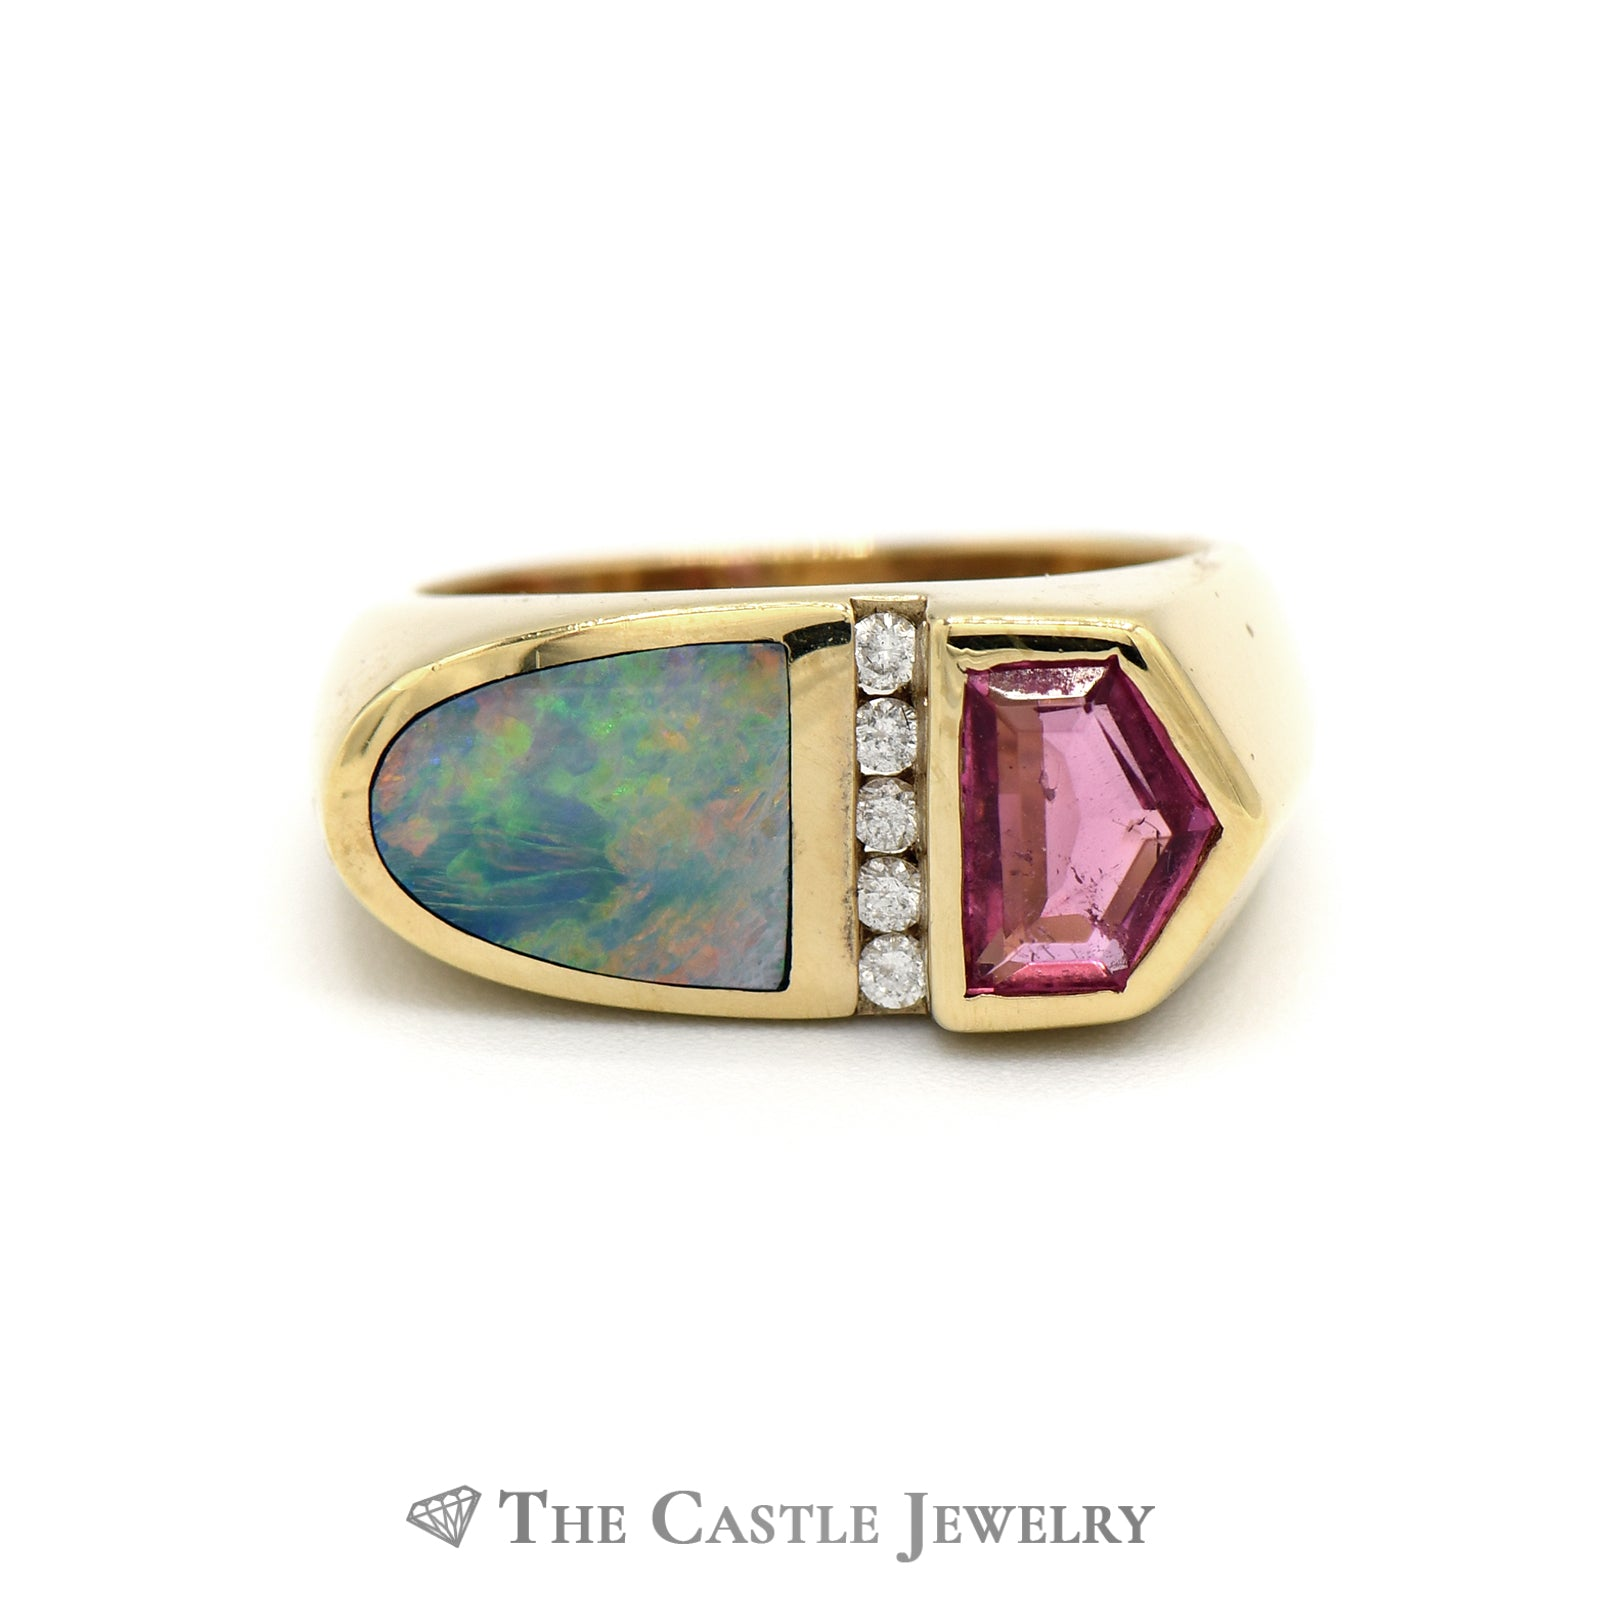 Kabana Rubellite & Diamond Ring with Opal Inlay in 14k Yellow Gold